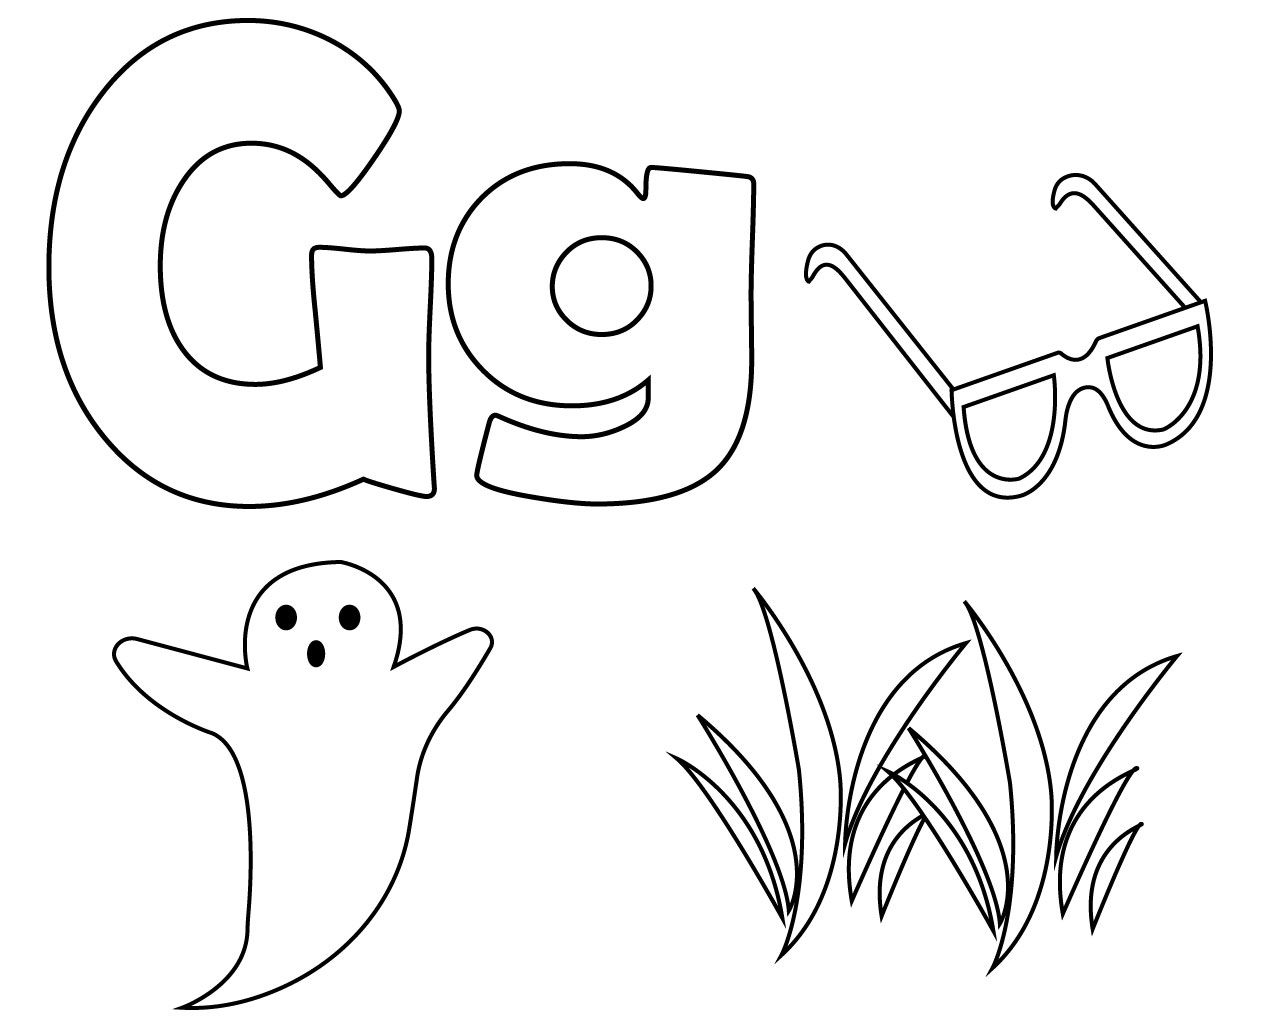 Letter G Coloring Pages For Your Lovely Toddlers With Images